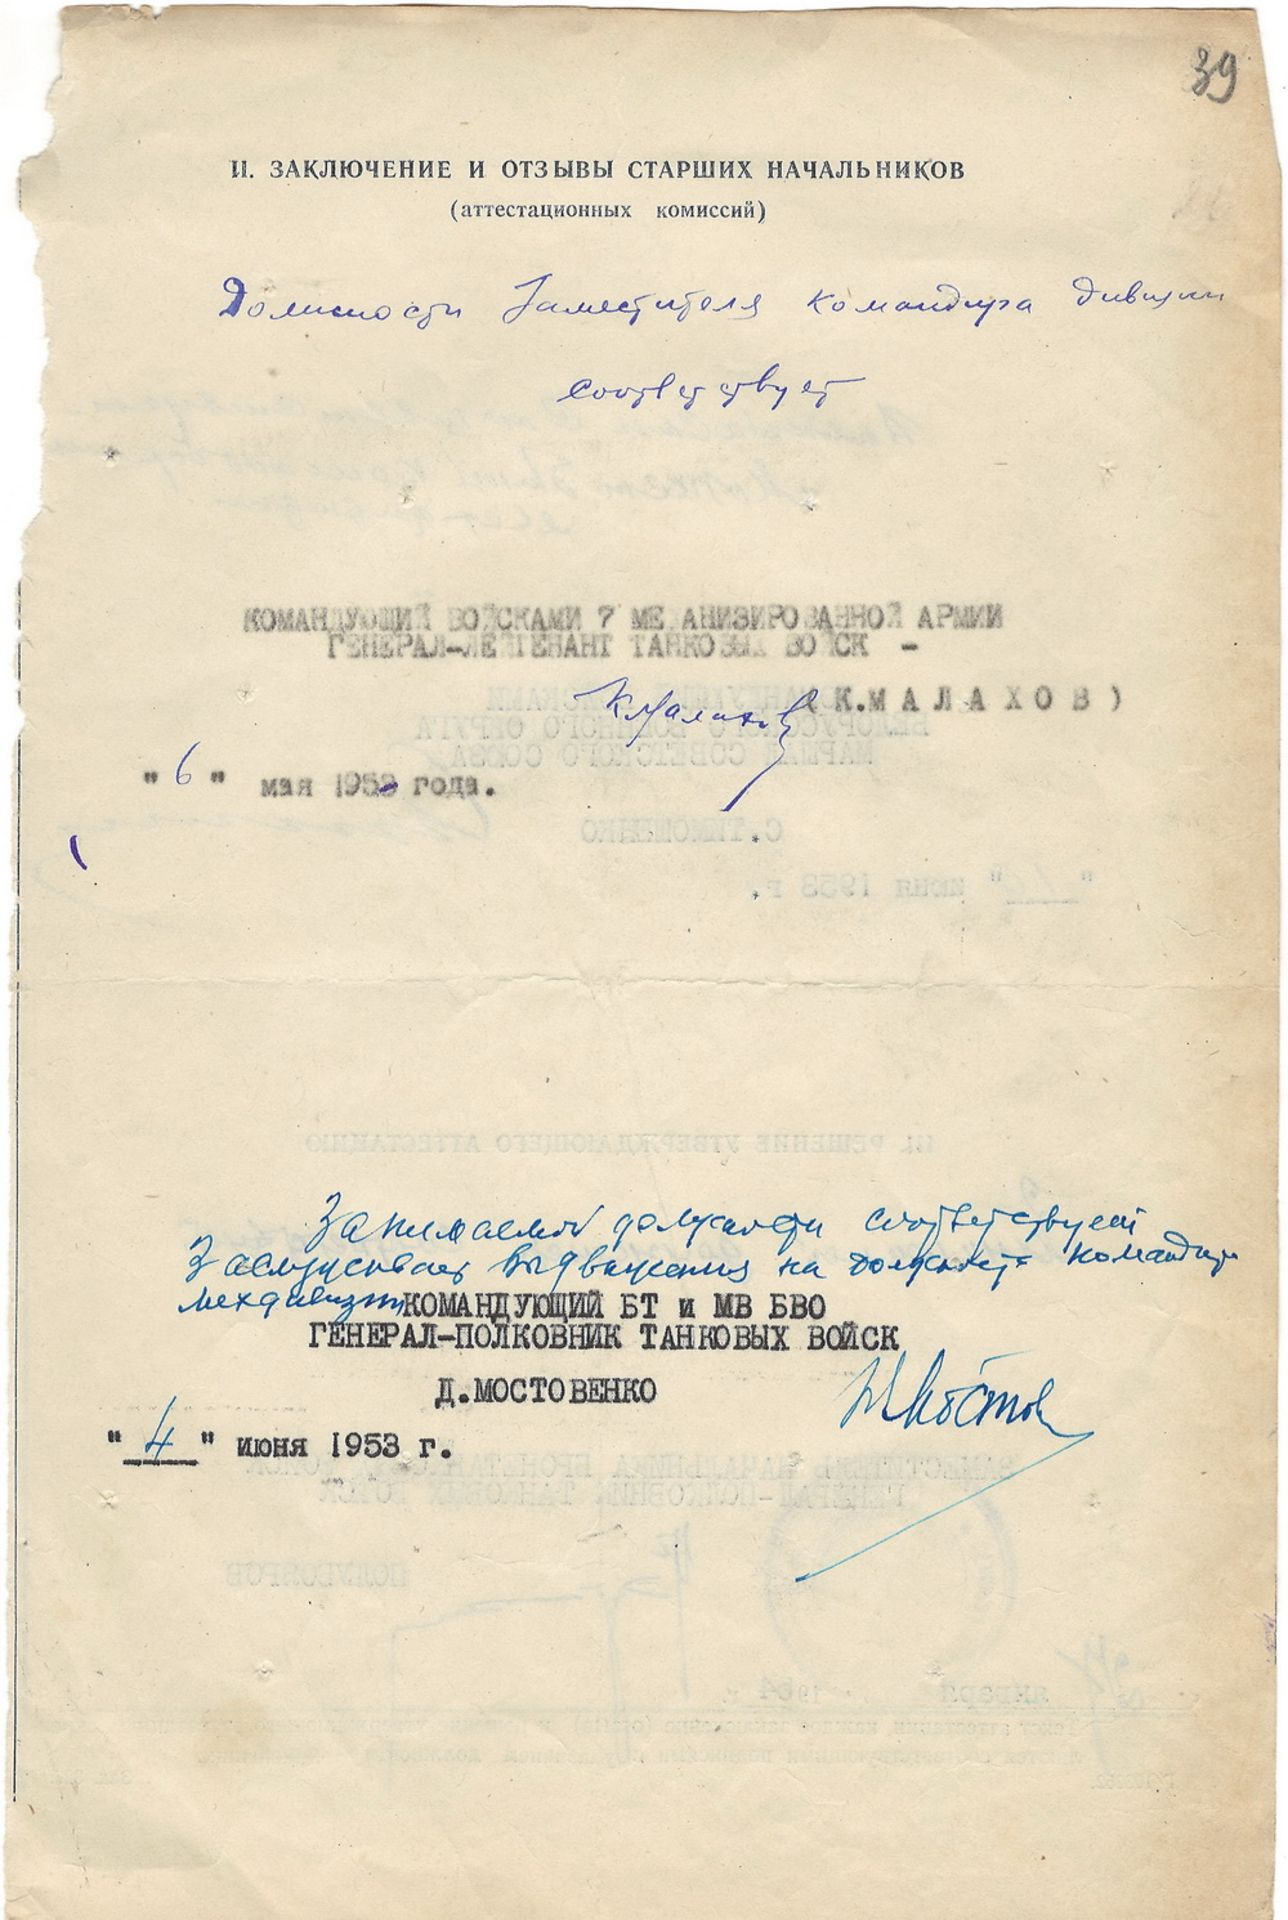 [Marshall Timoshenko, S., autograph. Soviet]. Efficiency report of assistant division commander. 4th